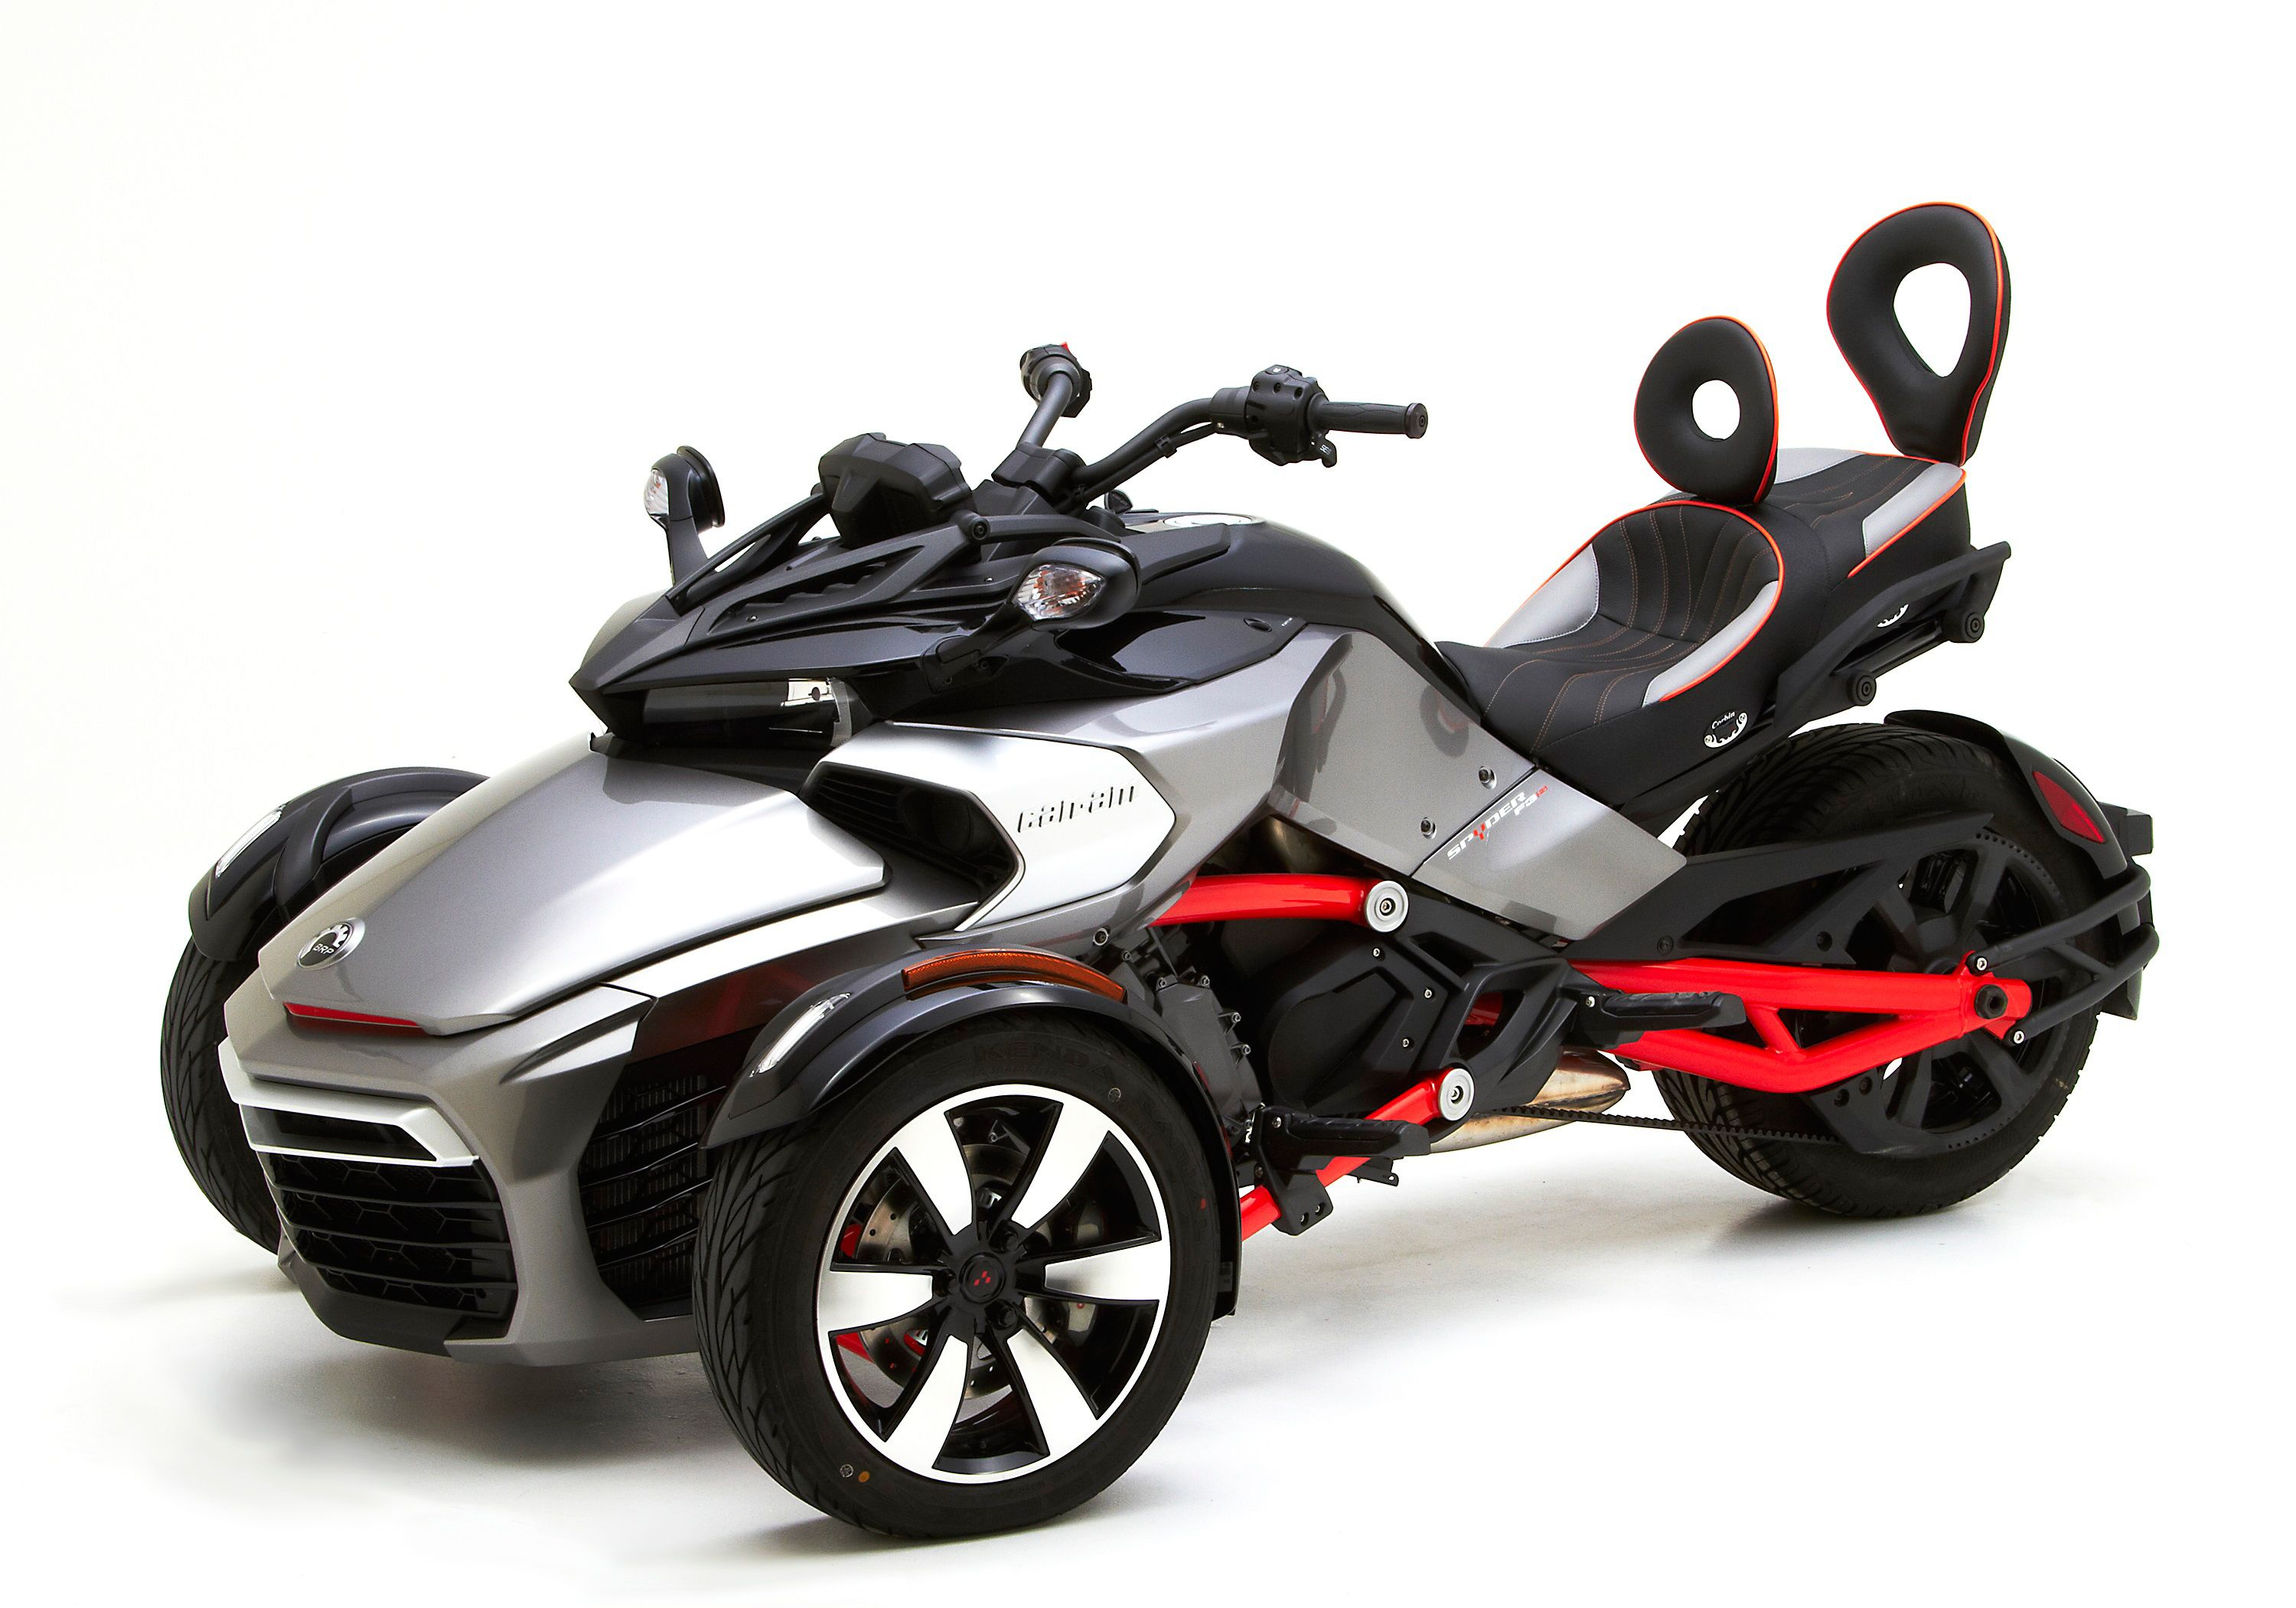 150318 corbin can am spyder f3 3000 2101 cool concept moto pinterest. Black Bedroom Furniture Sets. Home Design Ideas